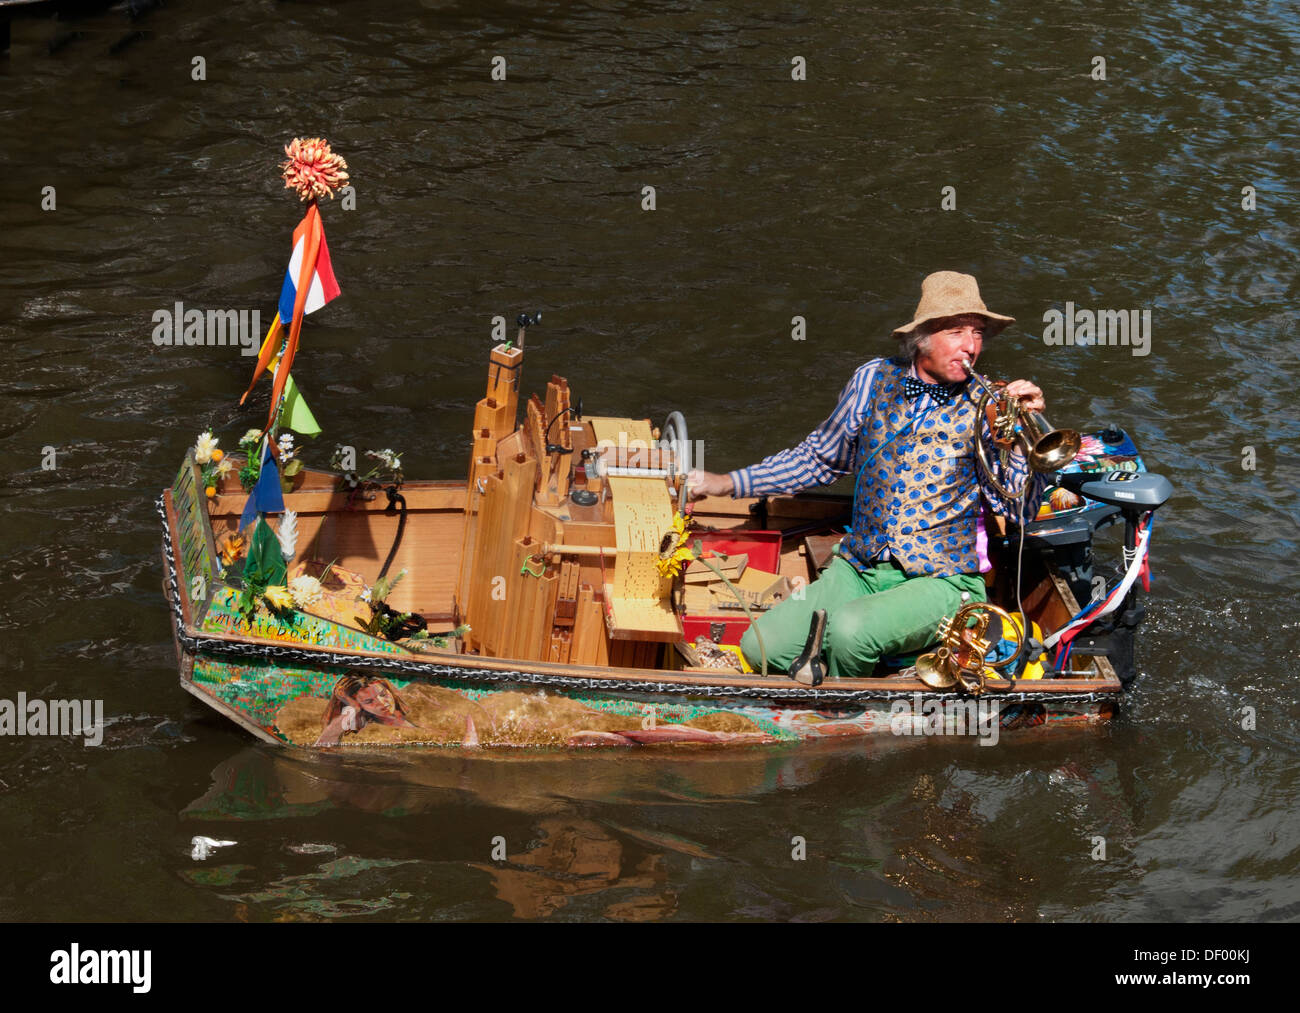 A busker ( Reinier Sijpkens ) playing trumpet in an organ boat on a canal in Amsterdam Netherlands - Stock Image